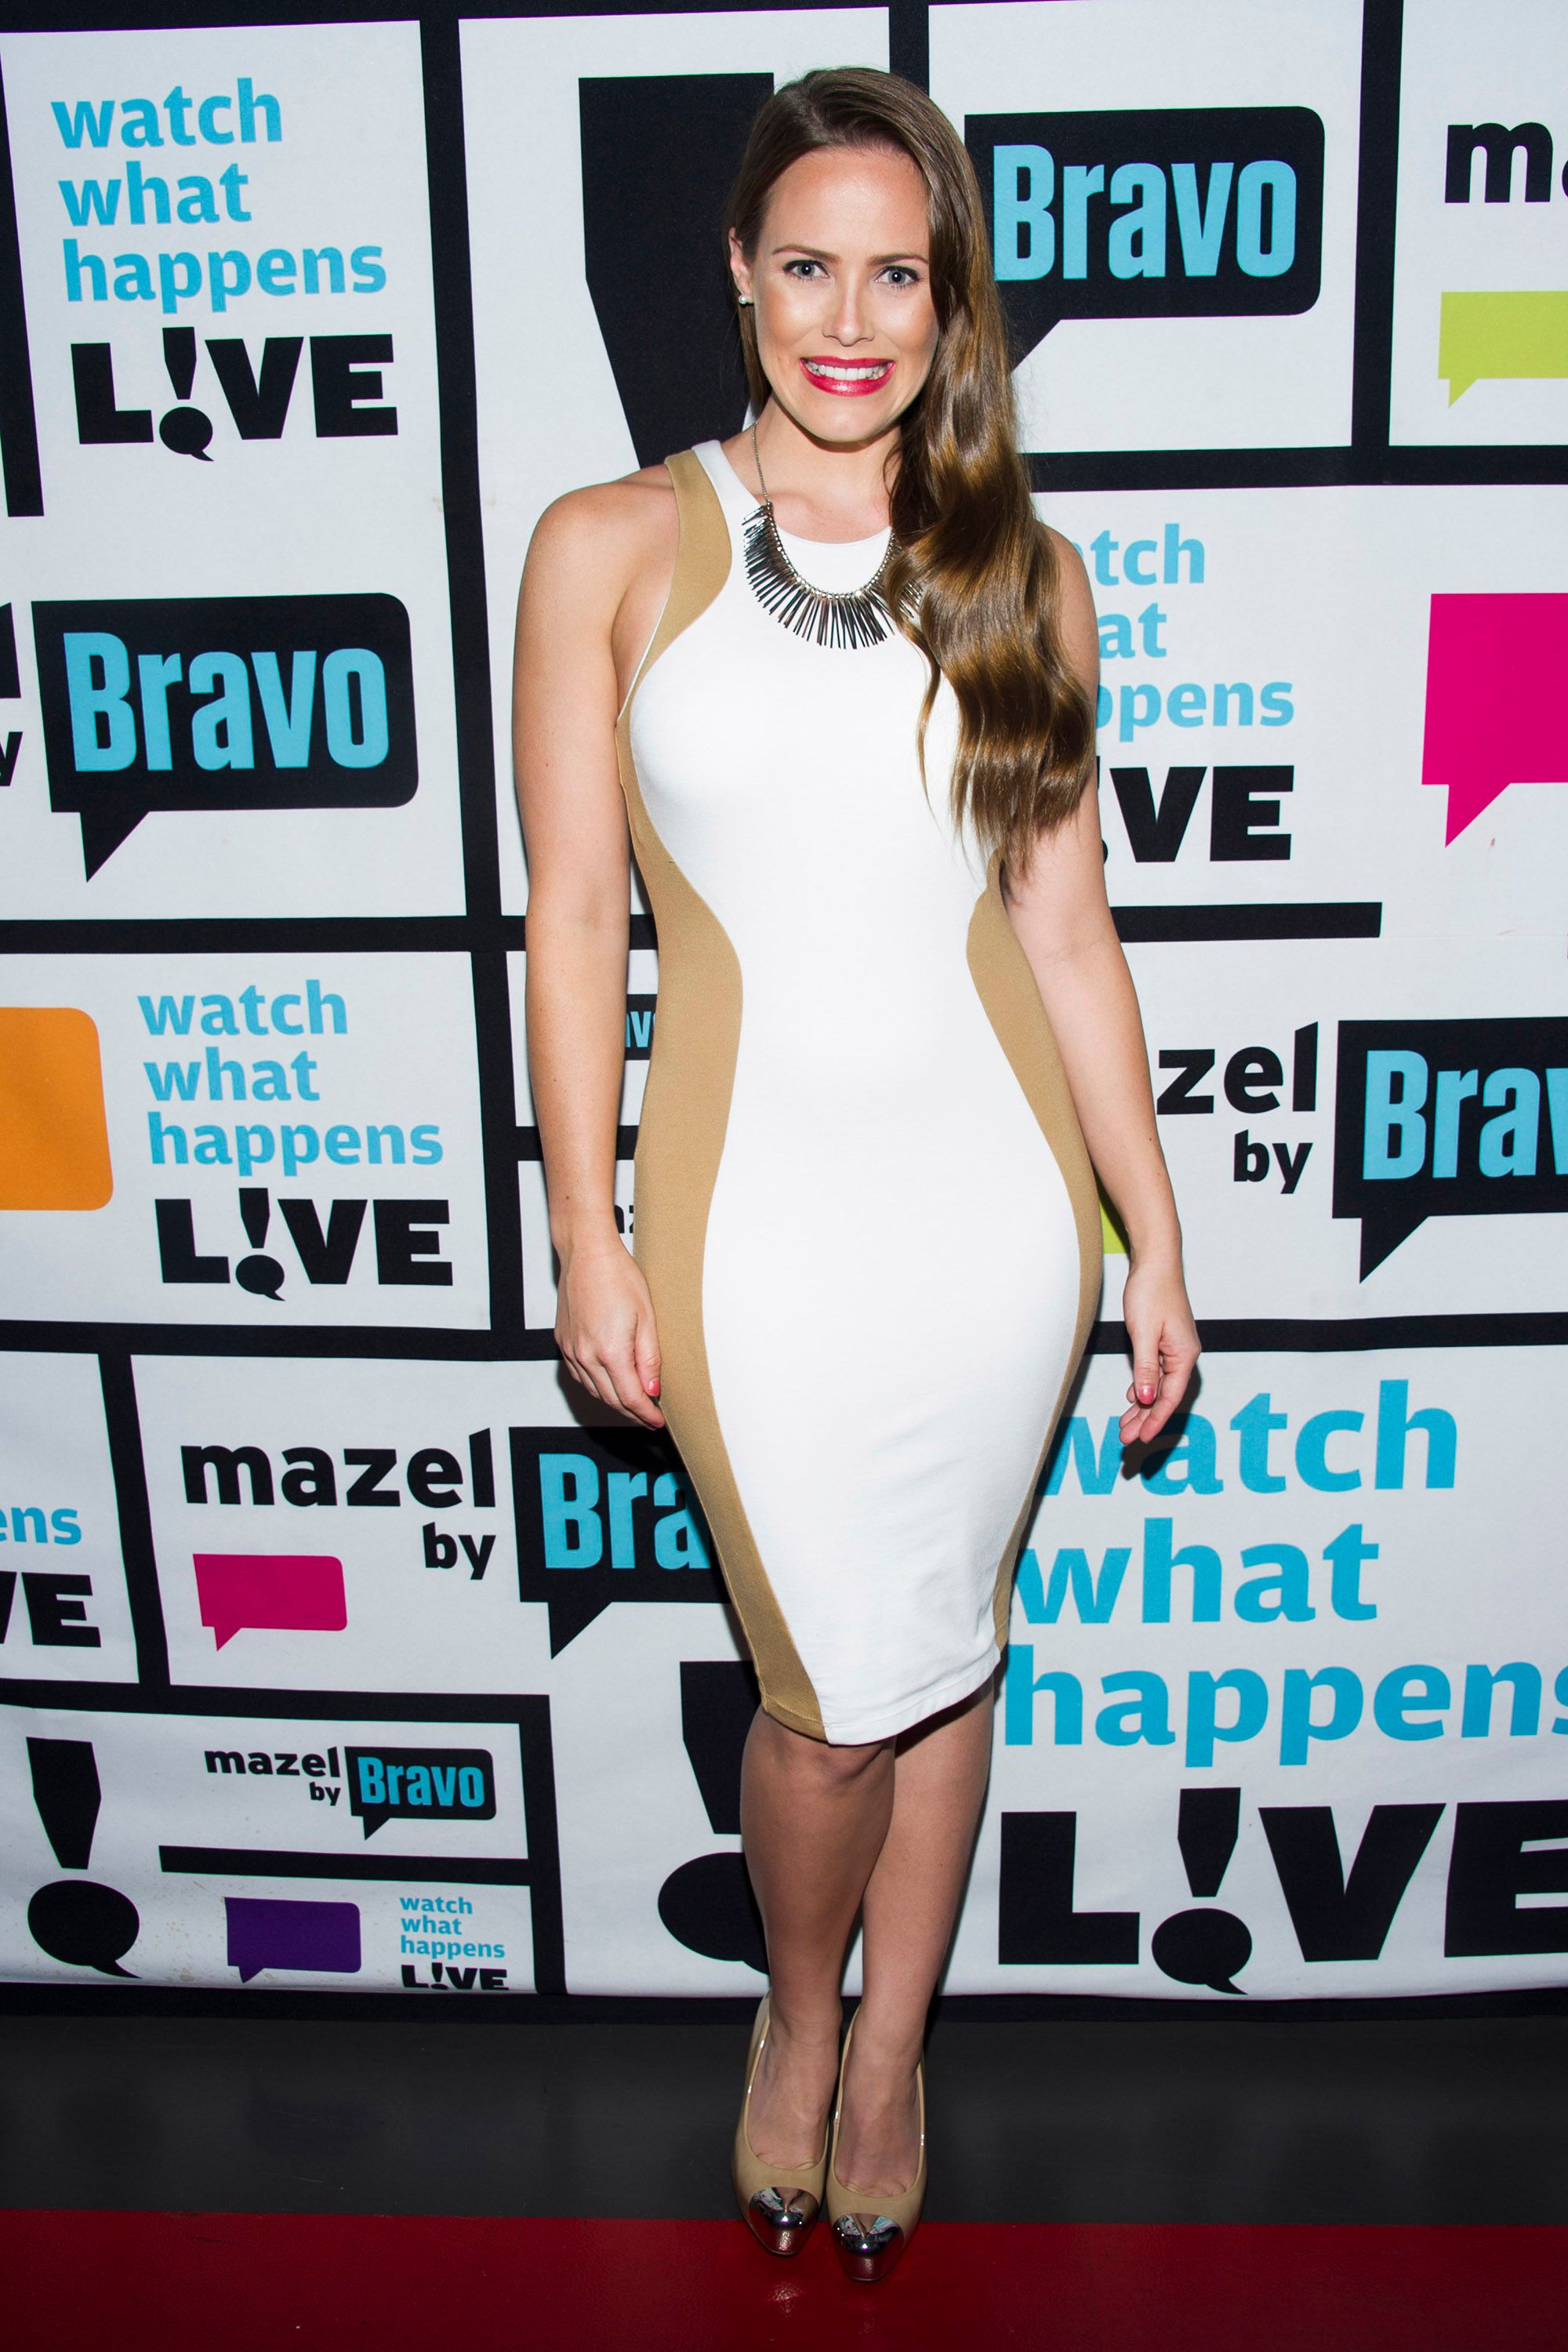 """Kara Keough at """"Watch What Happens Live"""" - Season 10 on June 24, 2013   Photo: Getty Images"""